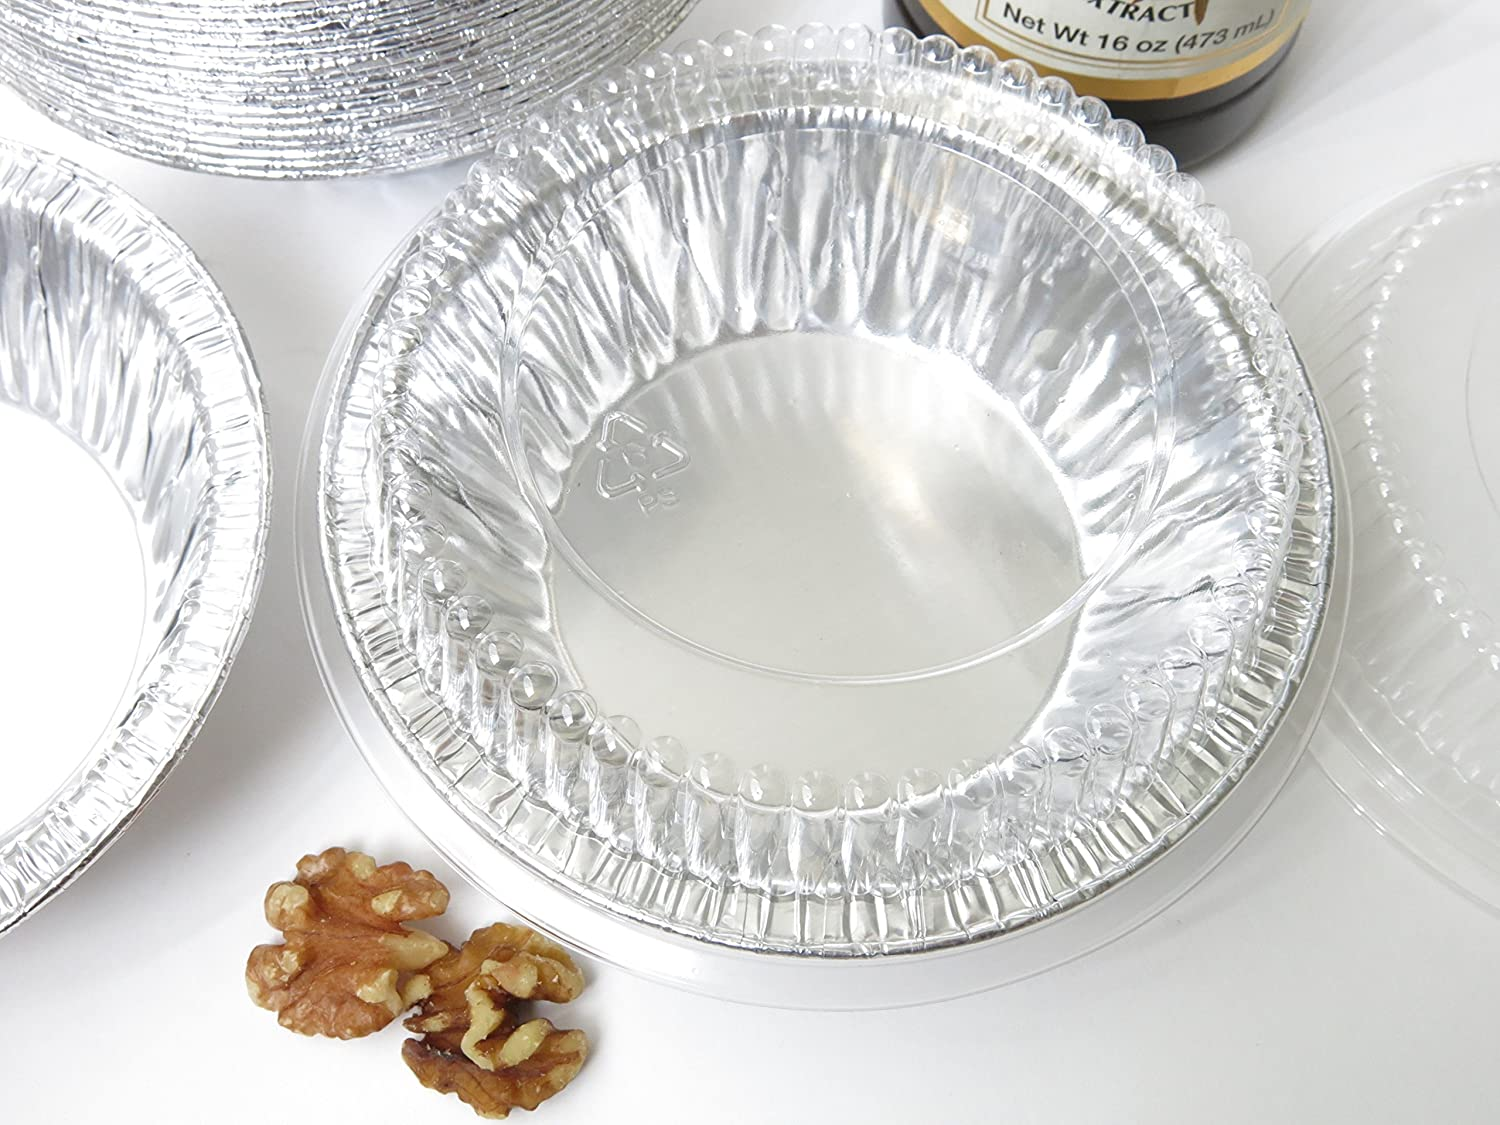 Amazon.com Disposable Aluminum 5  Tart Pan/inidual Pie Pan w/ Clear Dome Lid #501P (500) Kitchen u0026 Dining & Amazon.com: Disposable Aluminum 5